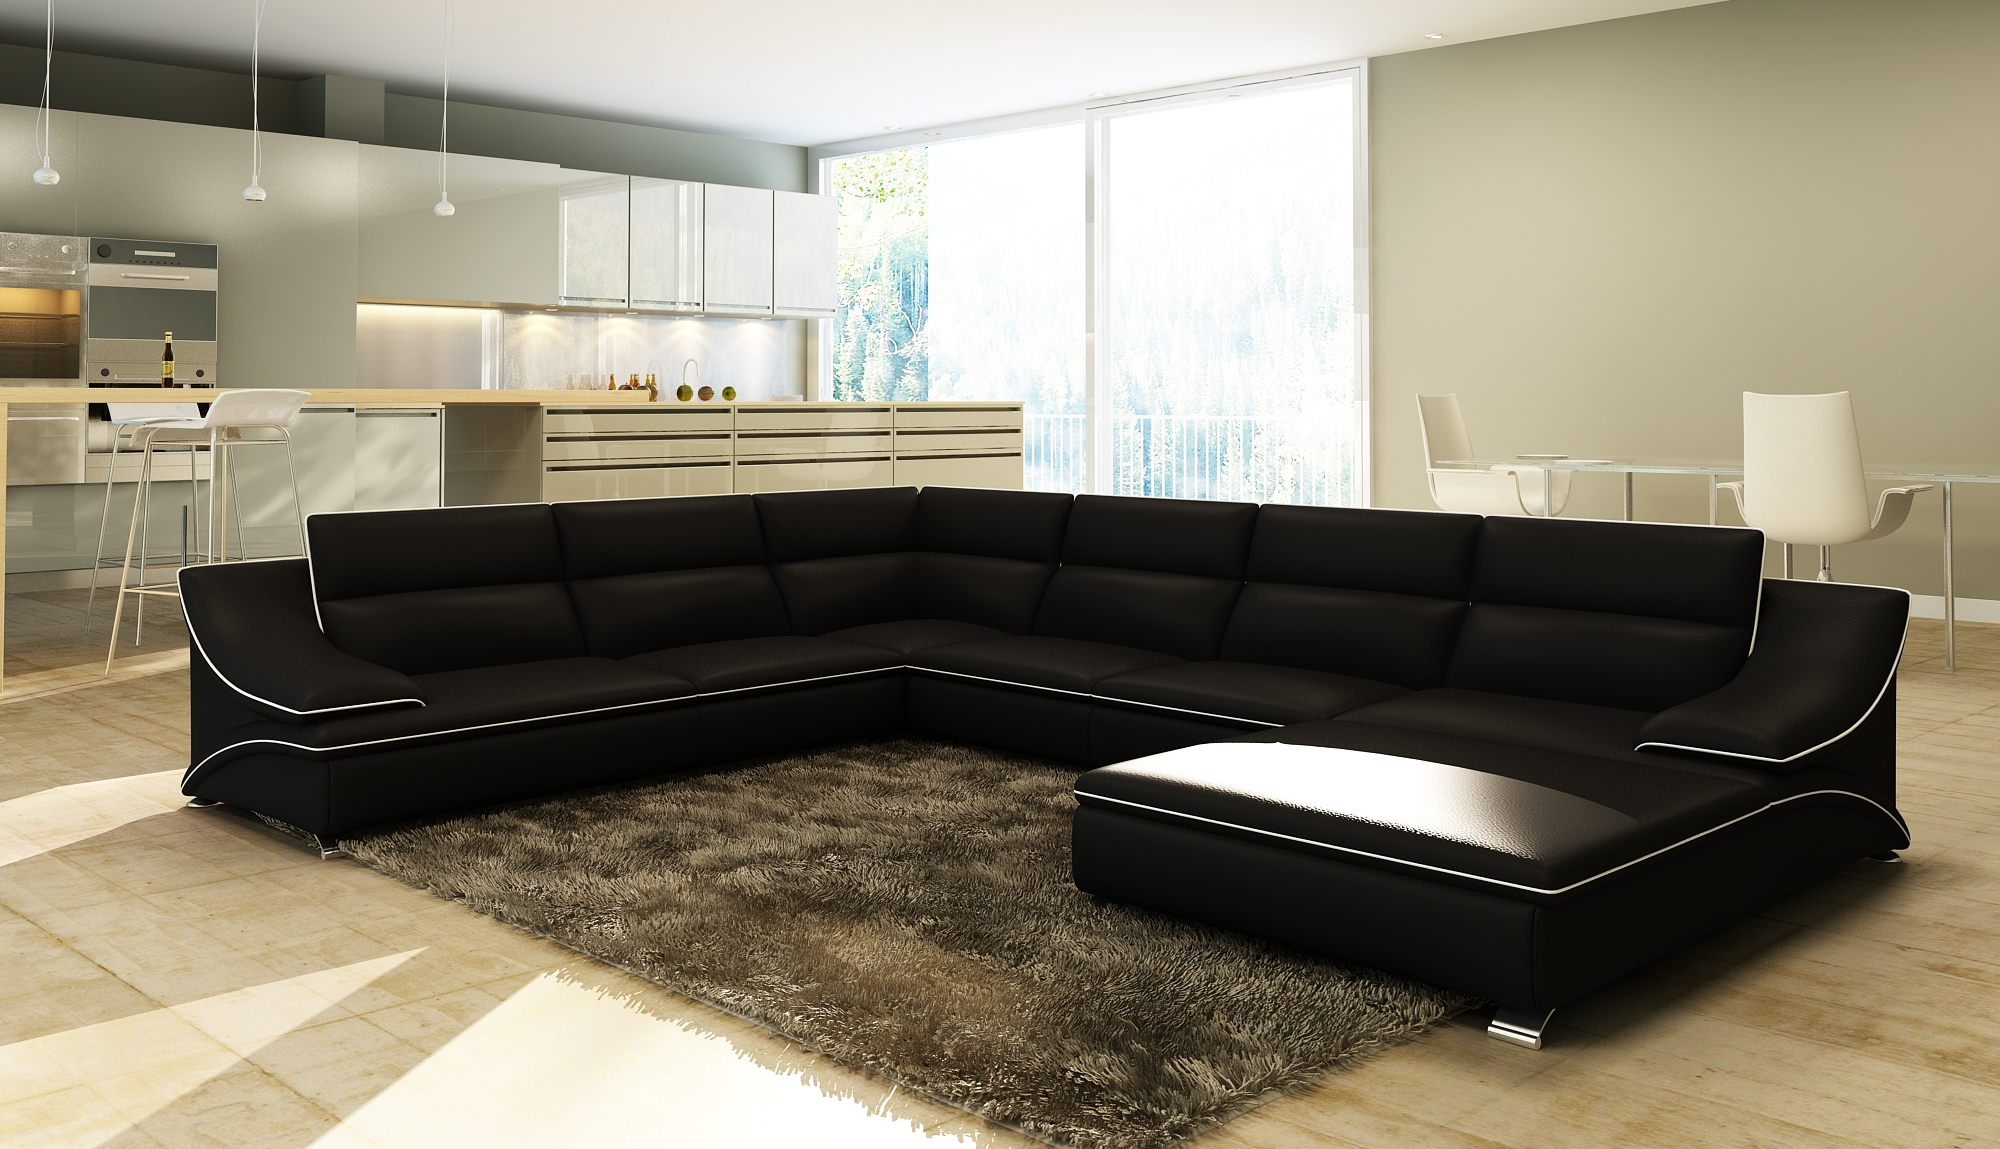 canape d angle 8 10 places royal sofa id e de canap. Black Bedroom Furniture Sets. Home Design Ideas